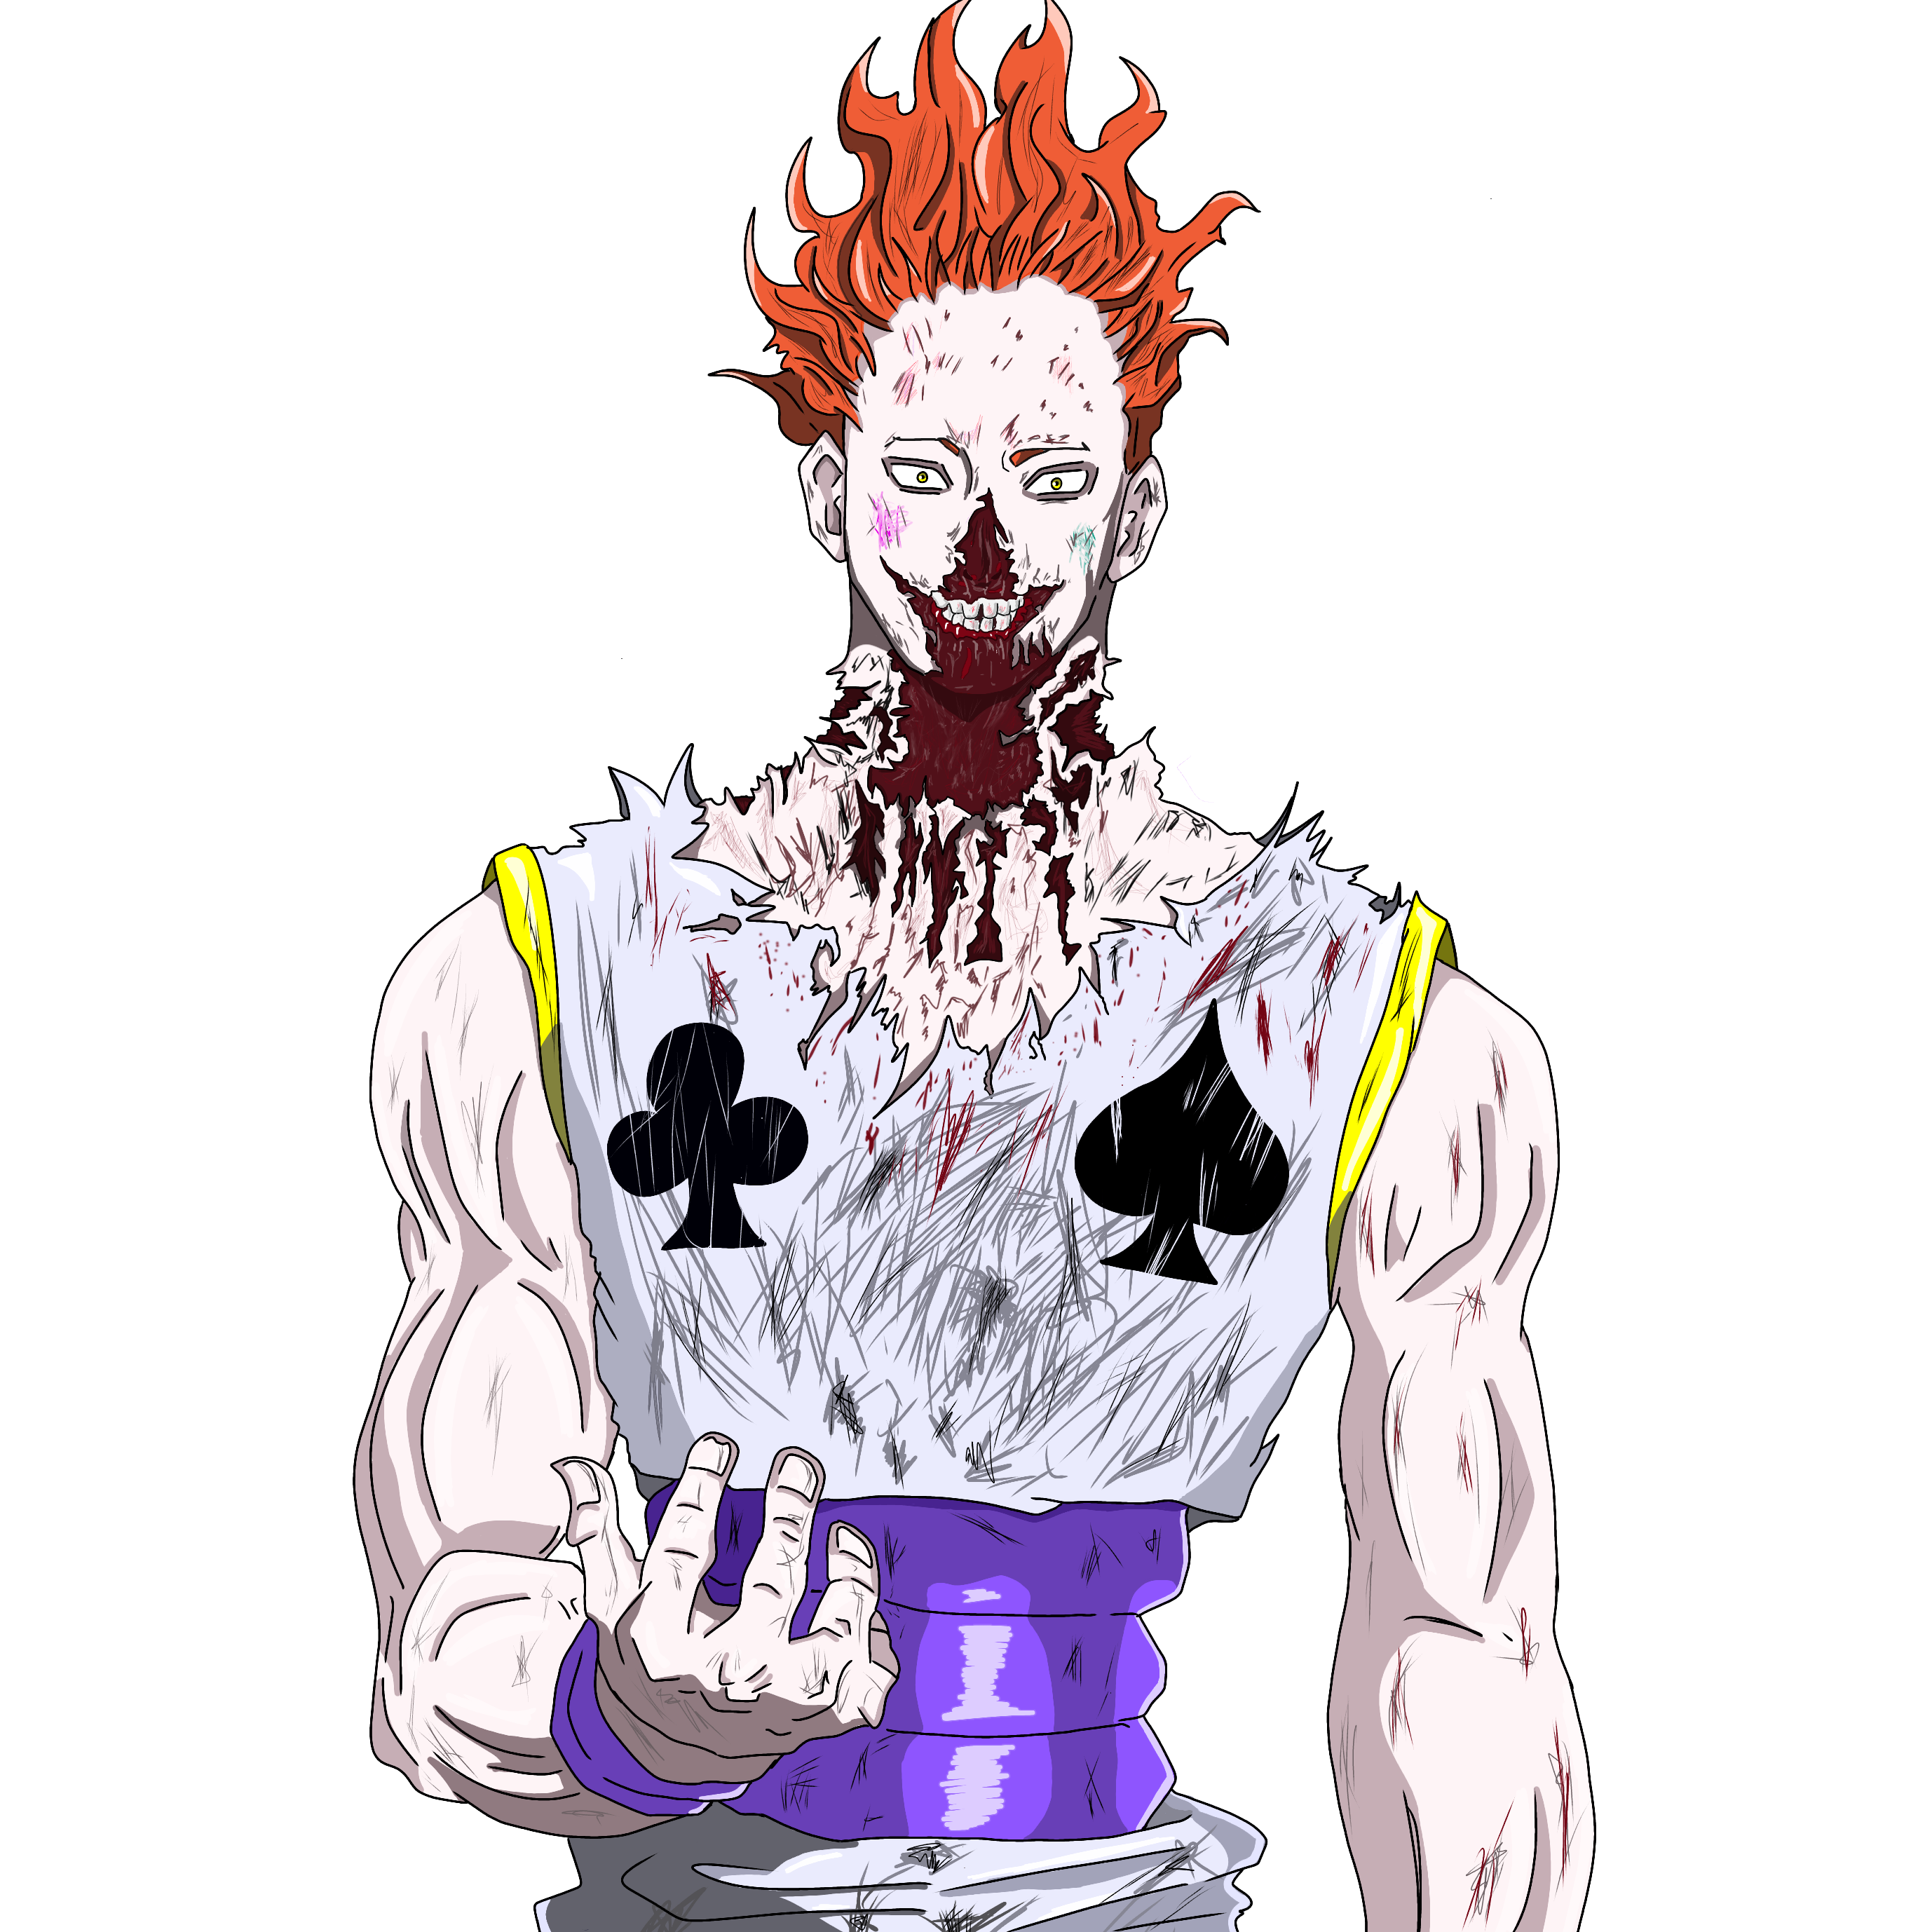 Hisoka drawing natsu. Morou after fight with